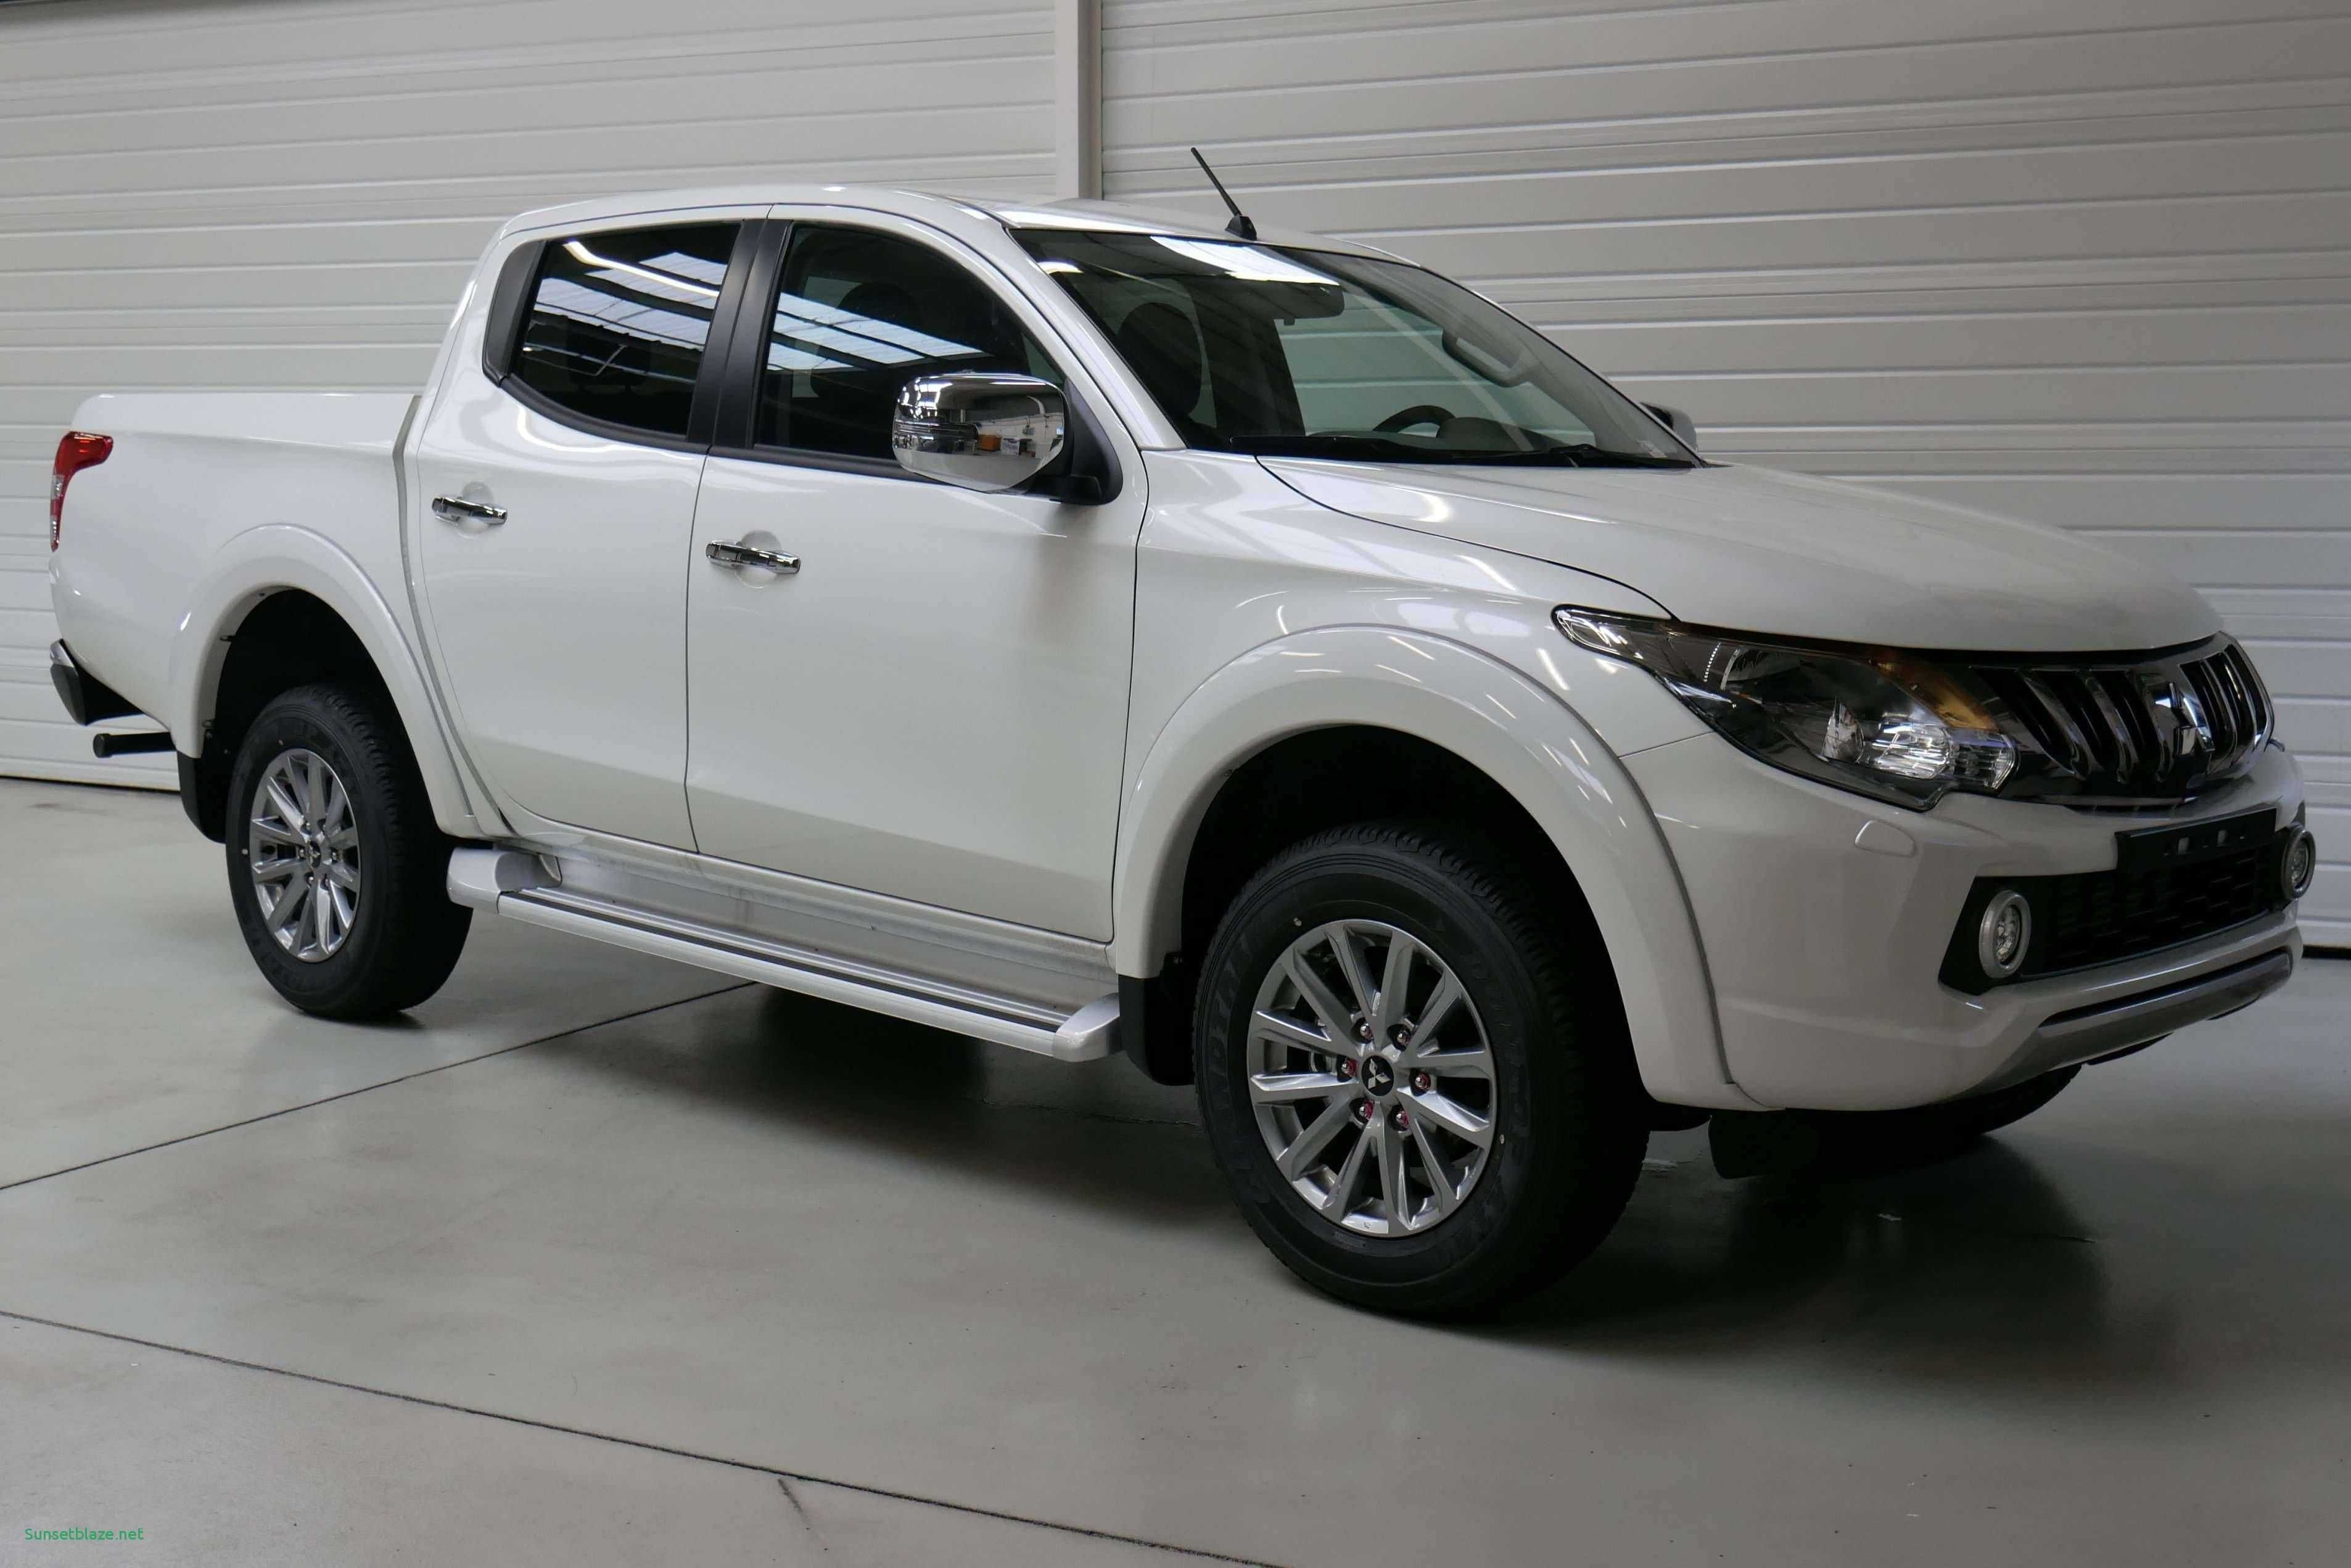 73 All New 2020 Mitsubishi Triton Perfect Outdoor Model